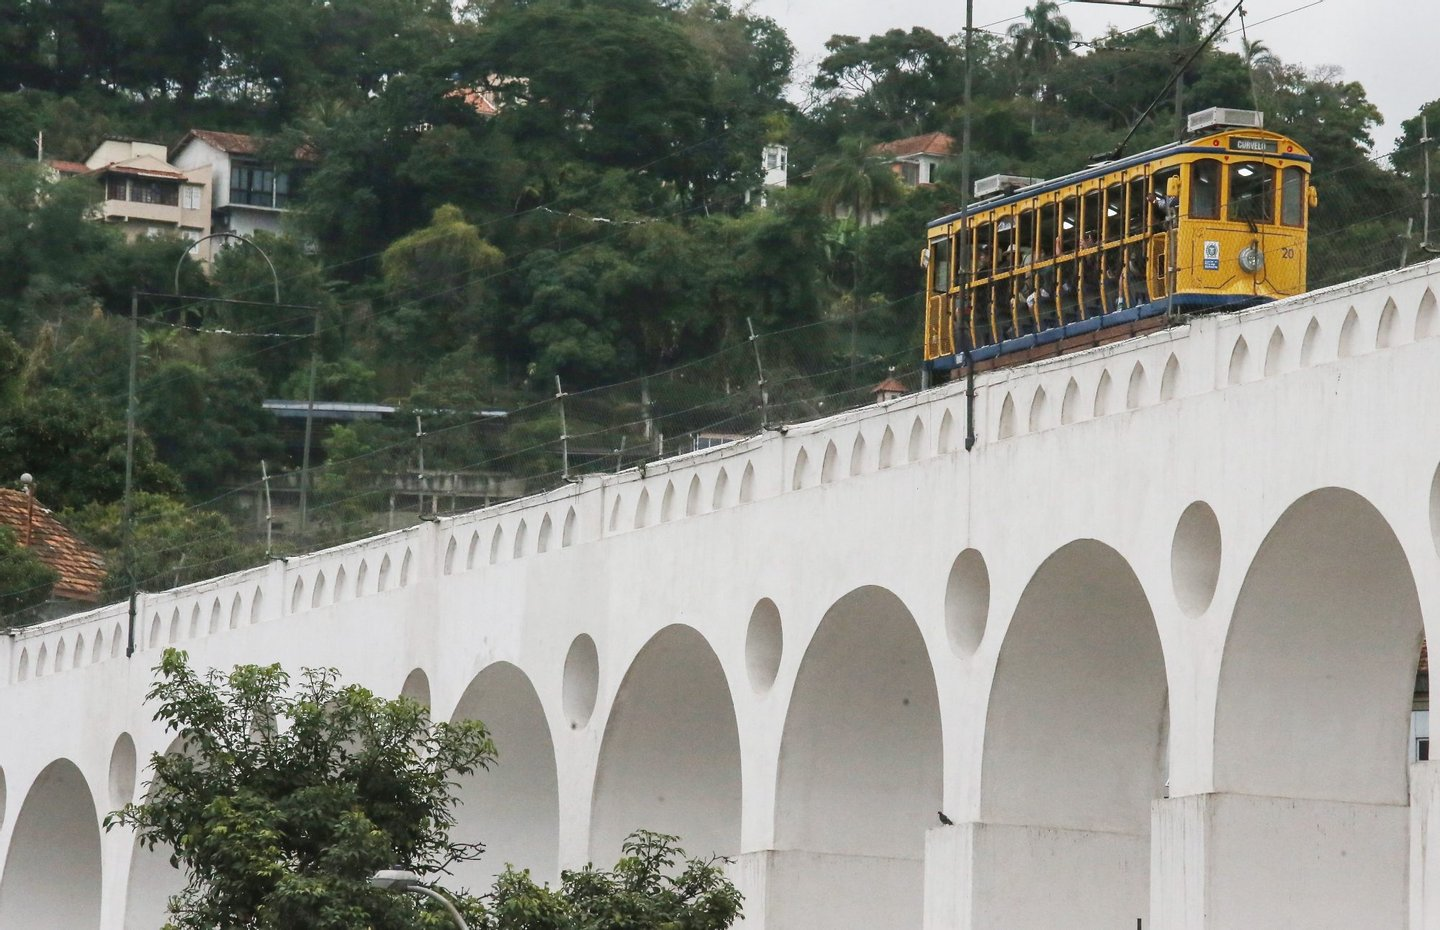 RIO DE JANEIRO, BRAZIL - JULY 27: Passengers ride across the Lapa Arches on the first day of pre-operations on the partially re-opened Santa Teresa tram line, or 'bonde', on July 27, 2015 in Rio de Janeiro, Brazil. The historic tram has been closed since a derailing accident in 2011 which left six dead and fifty injured. The first stretch to re-open covers about one kilometer of the scenic ten kilometer route. It has been operating since the late 19th century and is one of the oldest electric streetcar lines in Latin America. Rio is working on various transportation upgrade projects ahead of the games. August 5 marks the one-year mark to the start of the Rio 2016 Olympic Games. (Photo by Mario Tama/Getty Images)